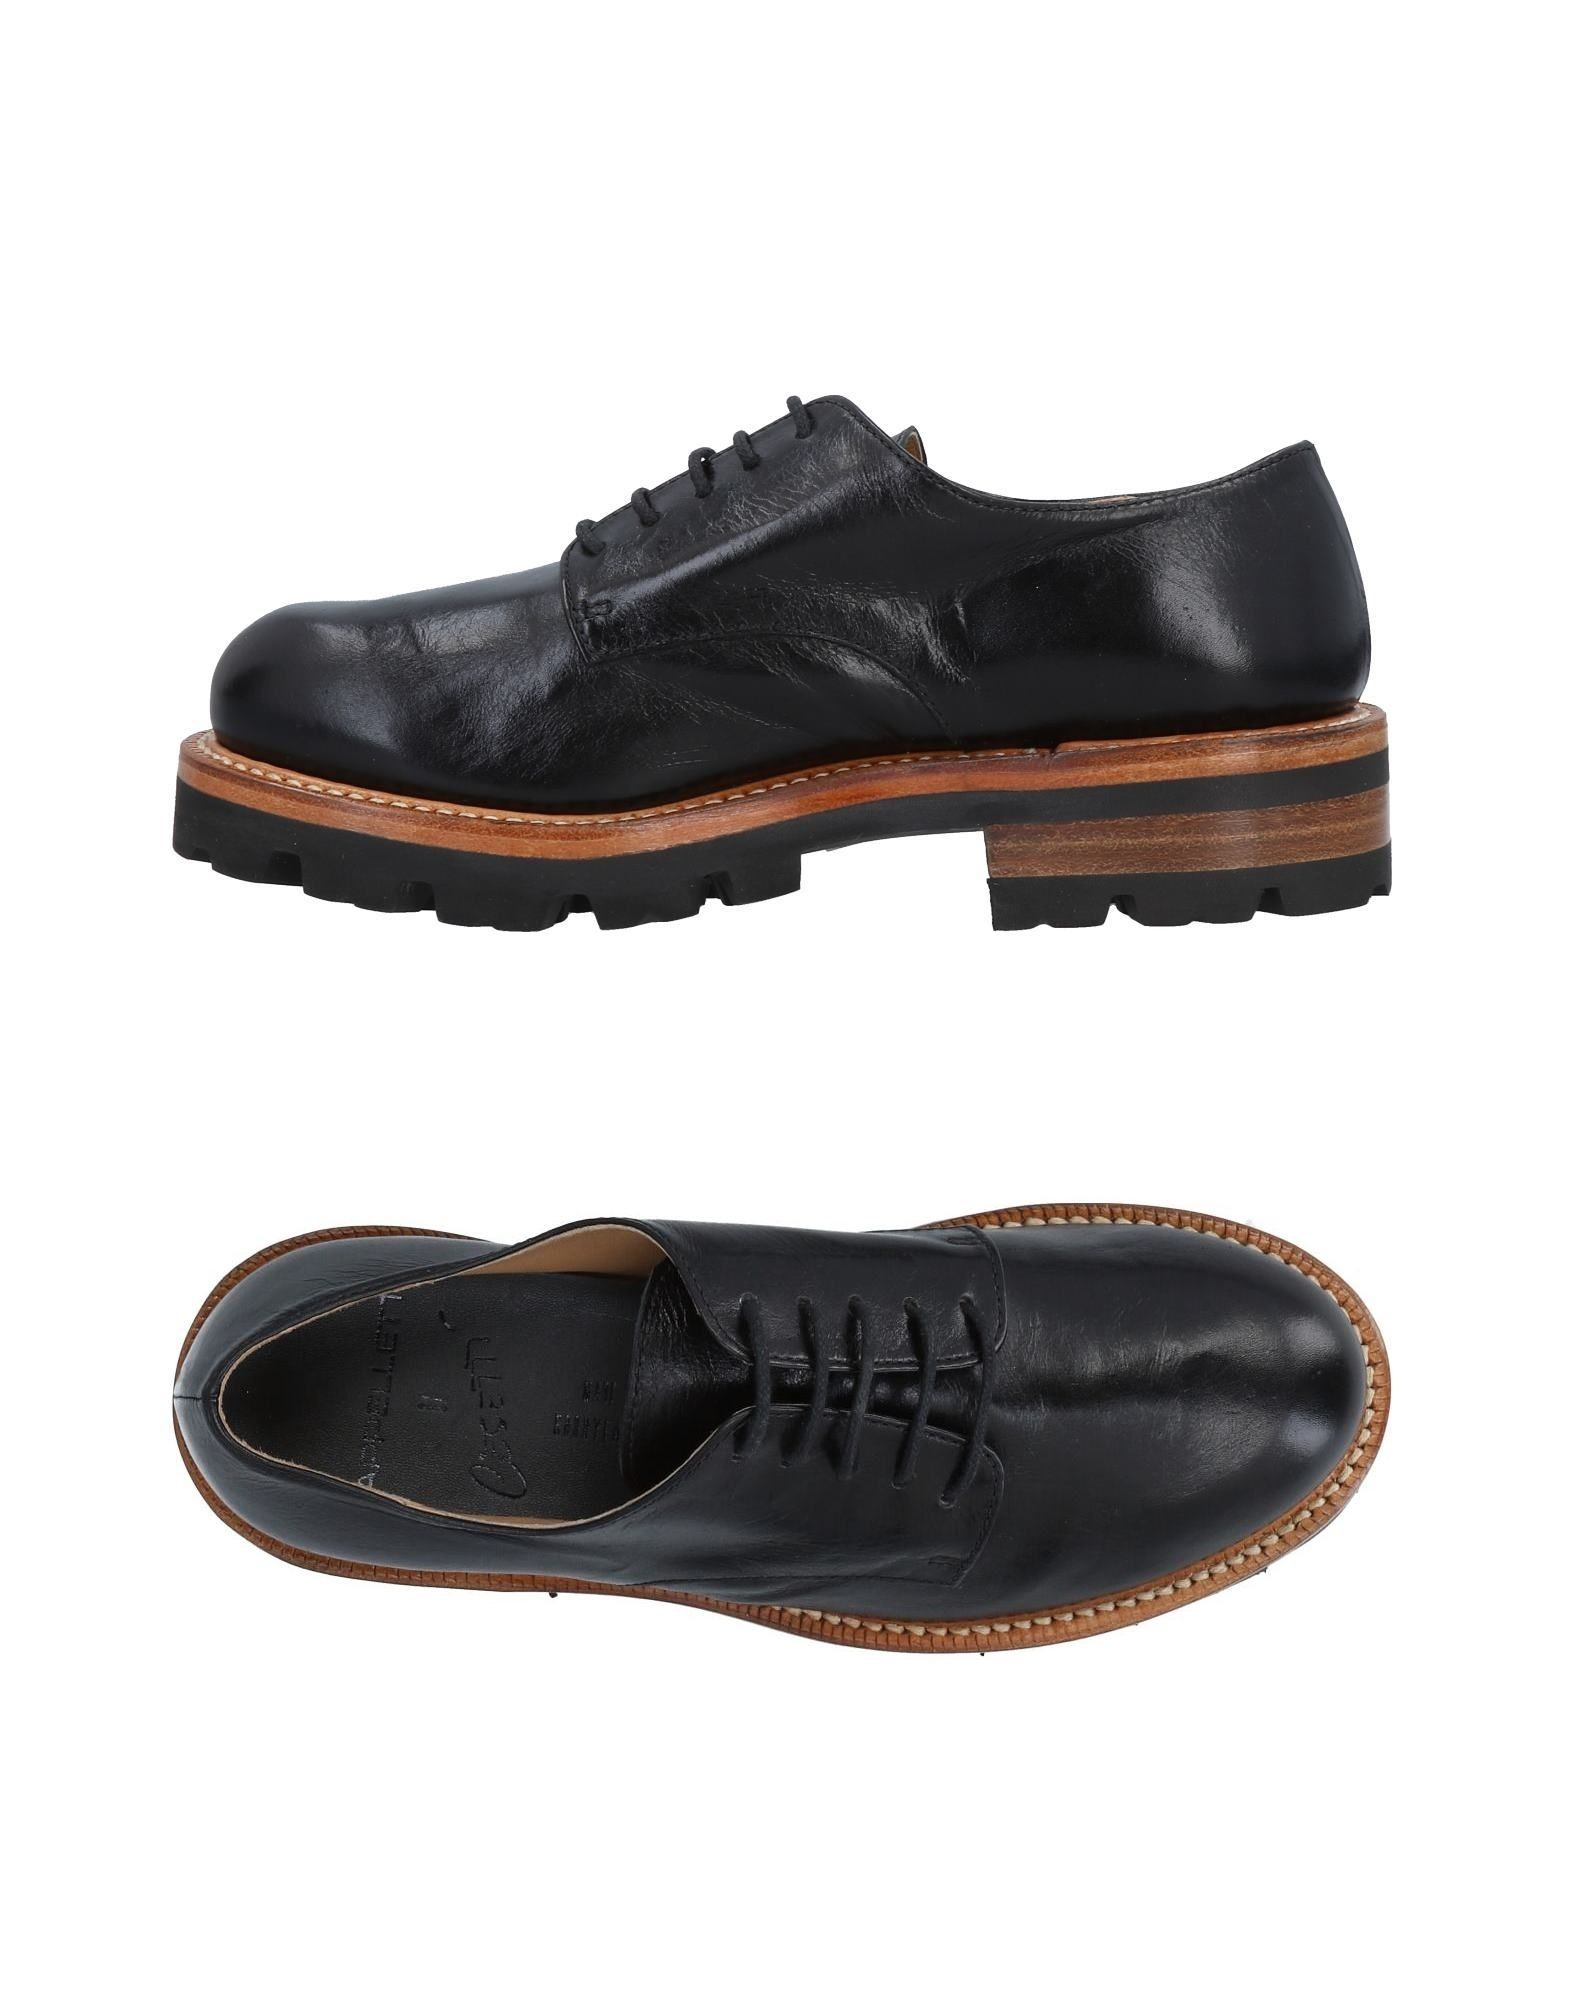 CAPPELLETTI Laced Shoes in Black